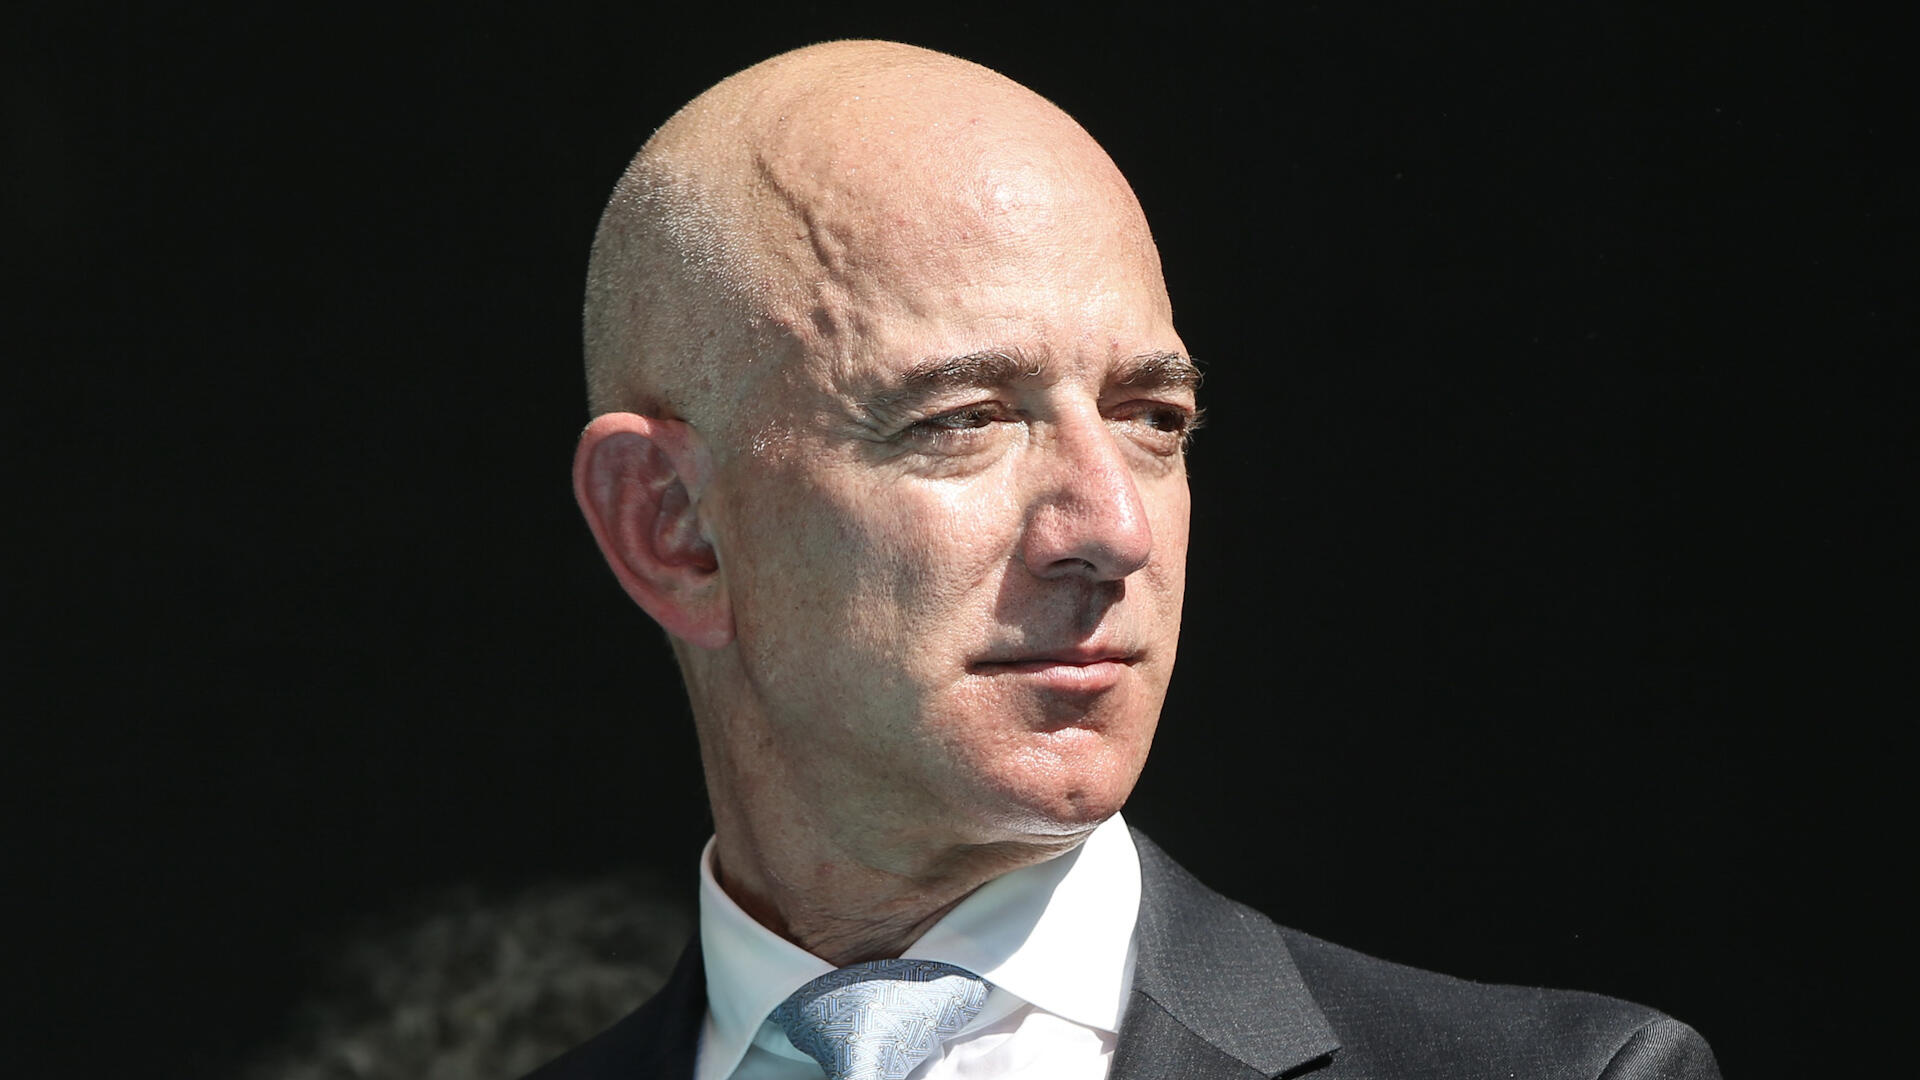 Video: Bezos says Amazon can do better by its employees, Google Earth gets big update